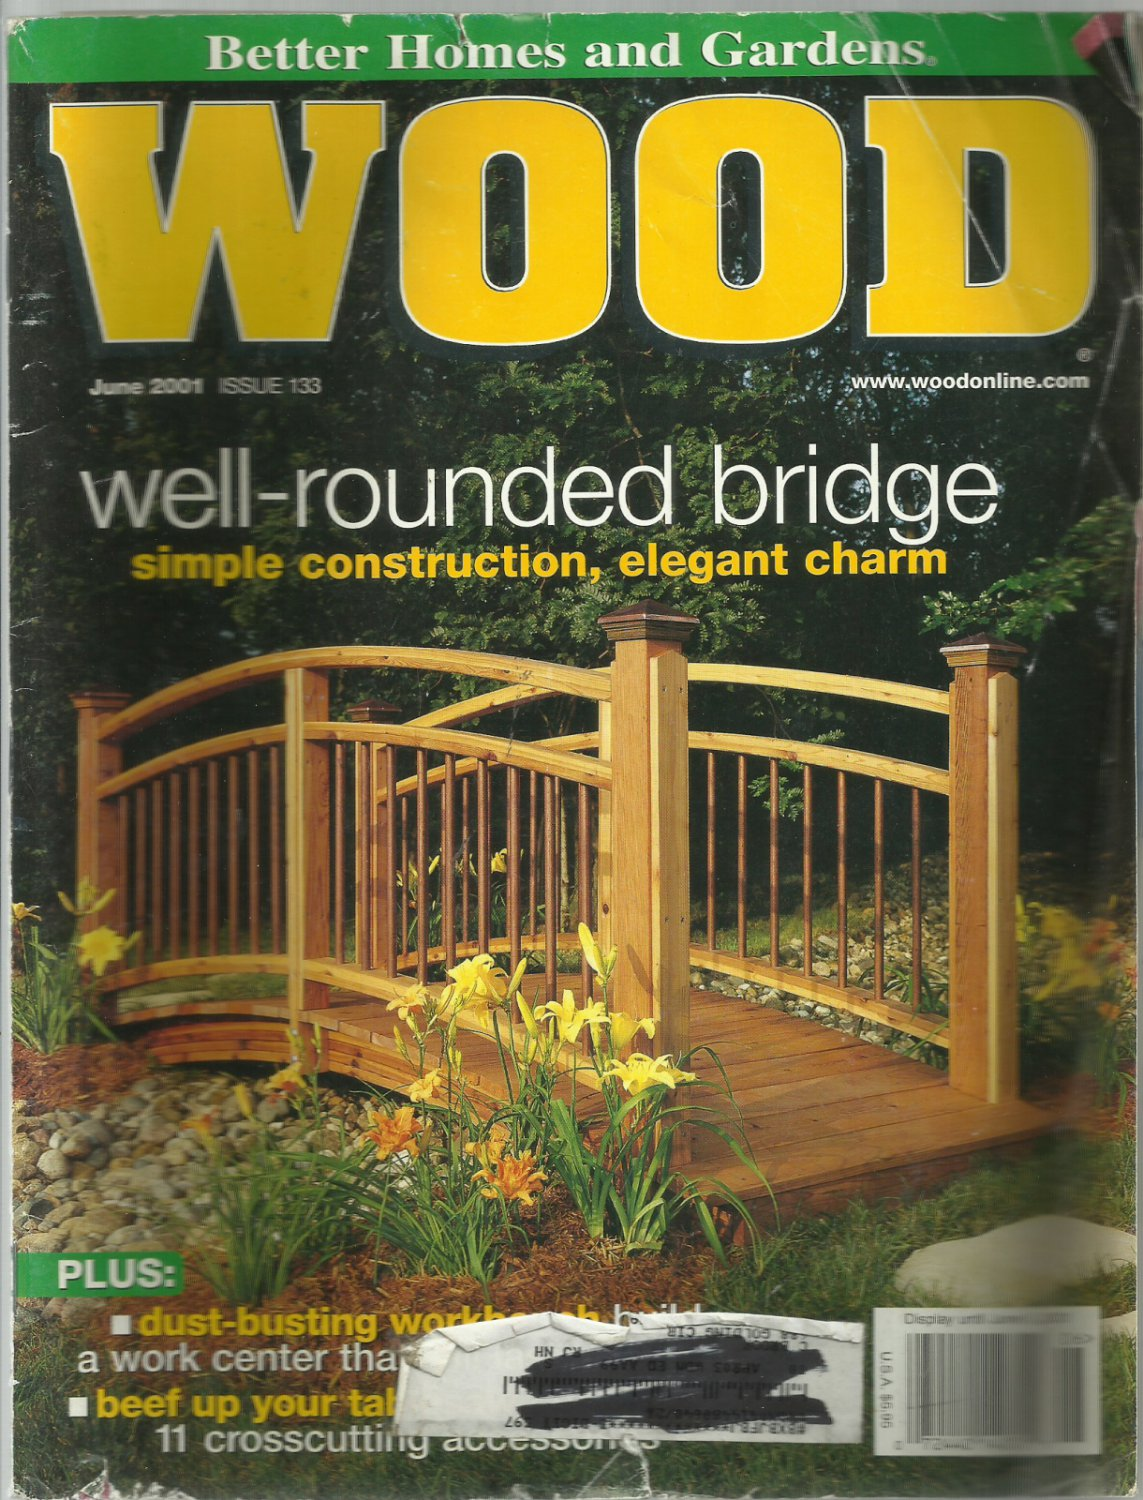 Better Homes And Gardens Wood Magazine  Well Rounded Bridge  # 133  June  2001